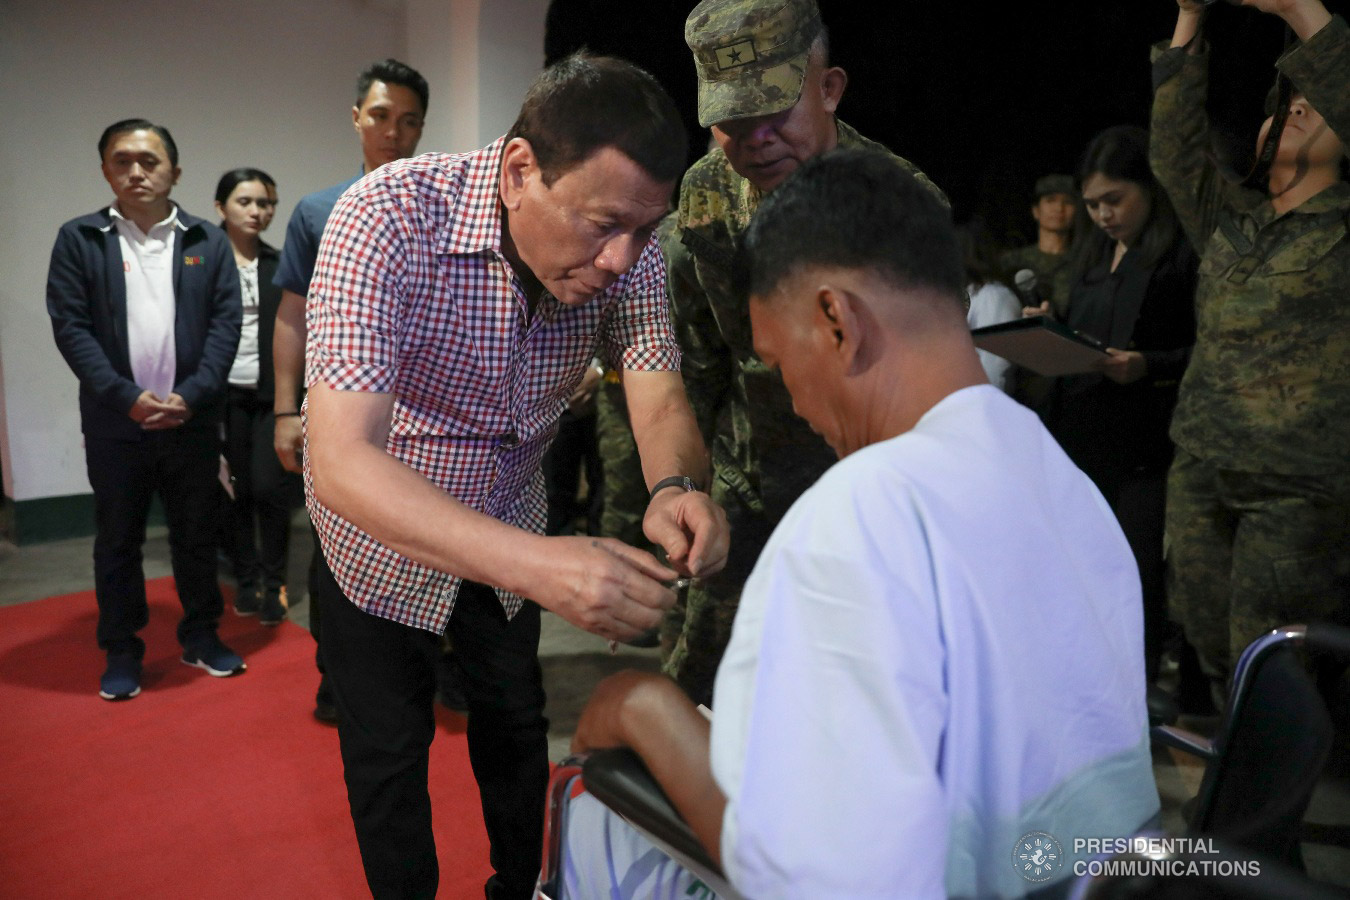 President Rodrigo Roa Duterte confers the Order of Lapu-Lapu Rank of Kampilan on one of the wounded soldiers he visited at Camp Evangelista Station Hospital in Cagayan de Oro City on January 25, 2019. KARL NORMAN ALONZO/PRESIDENTIAL PHOTO